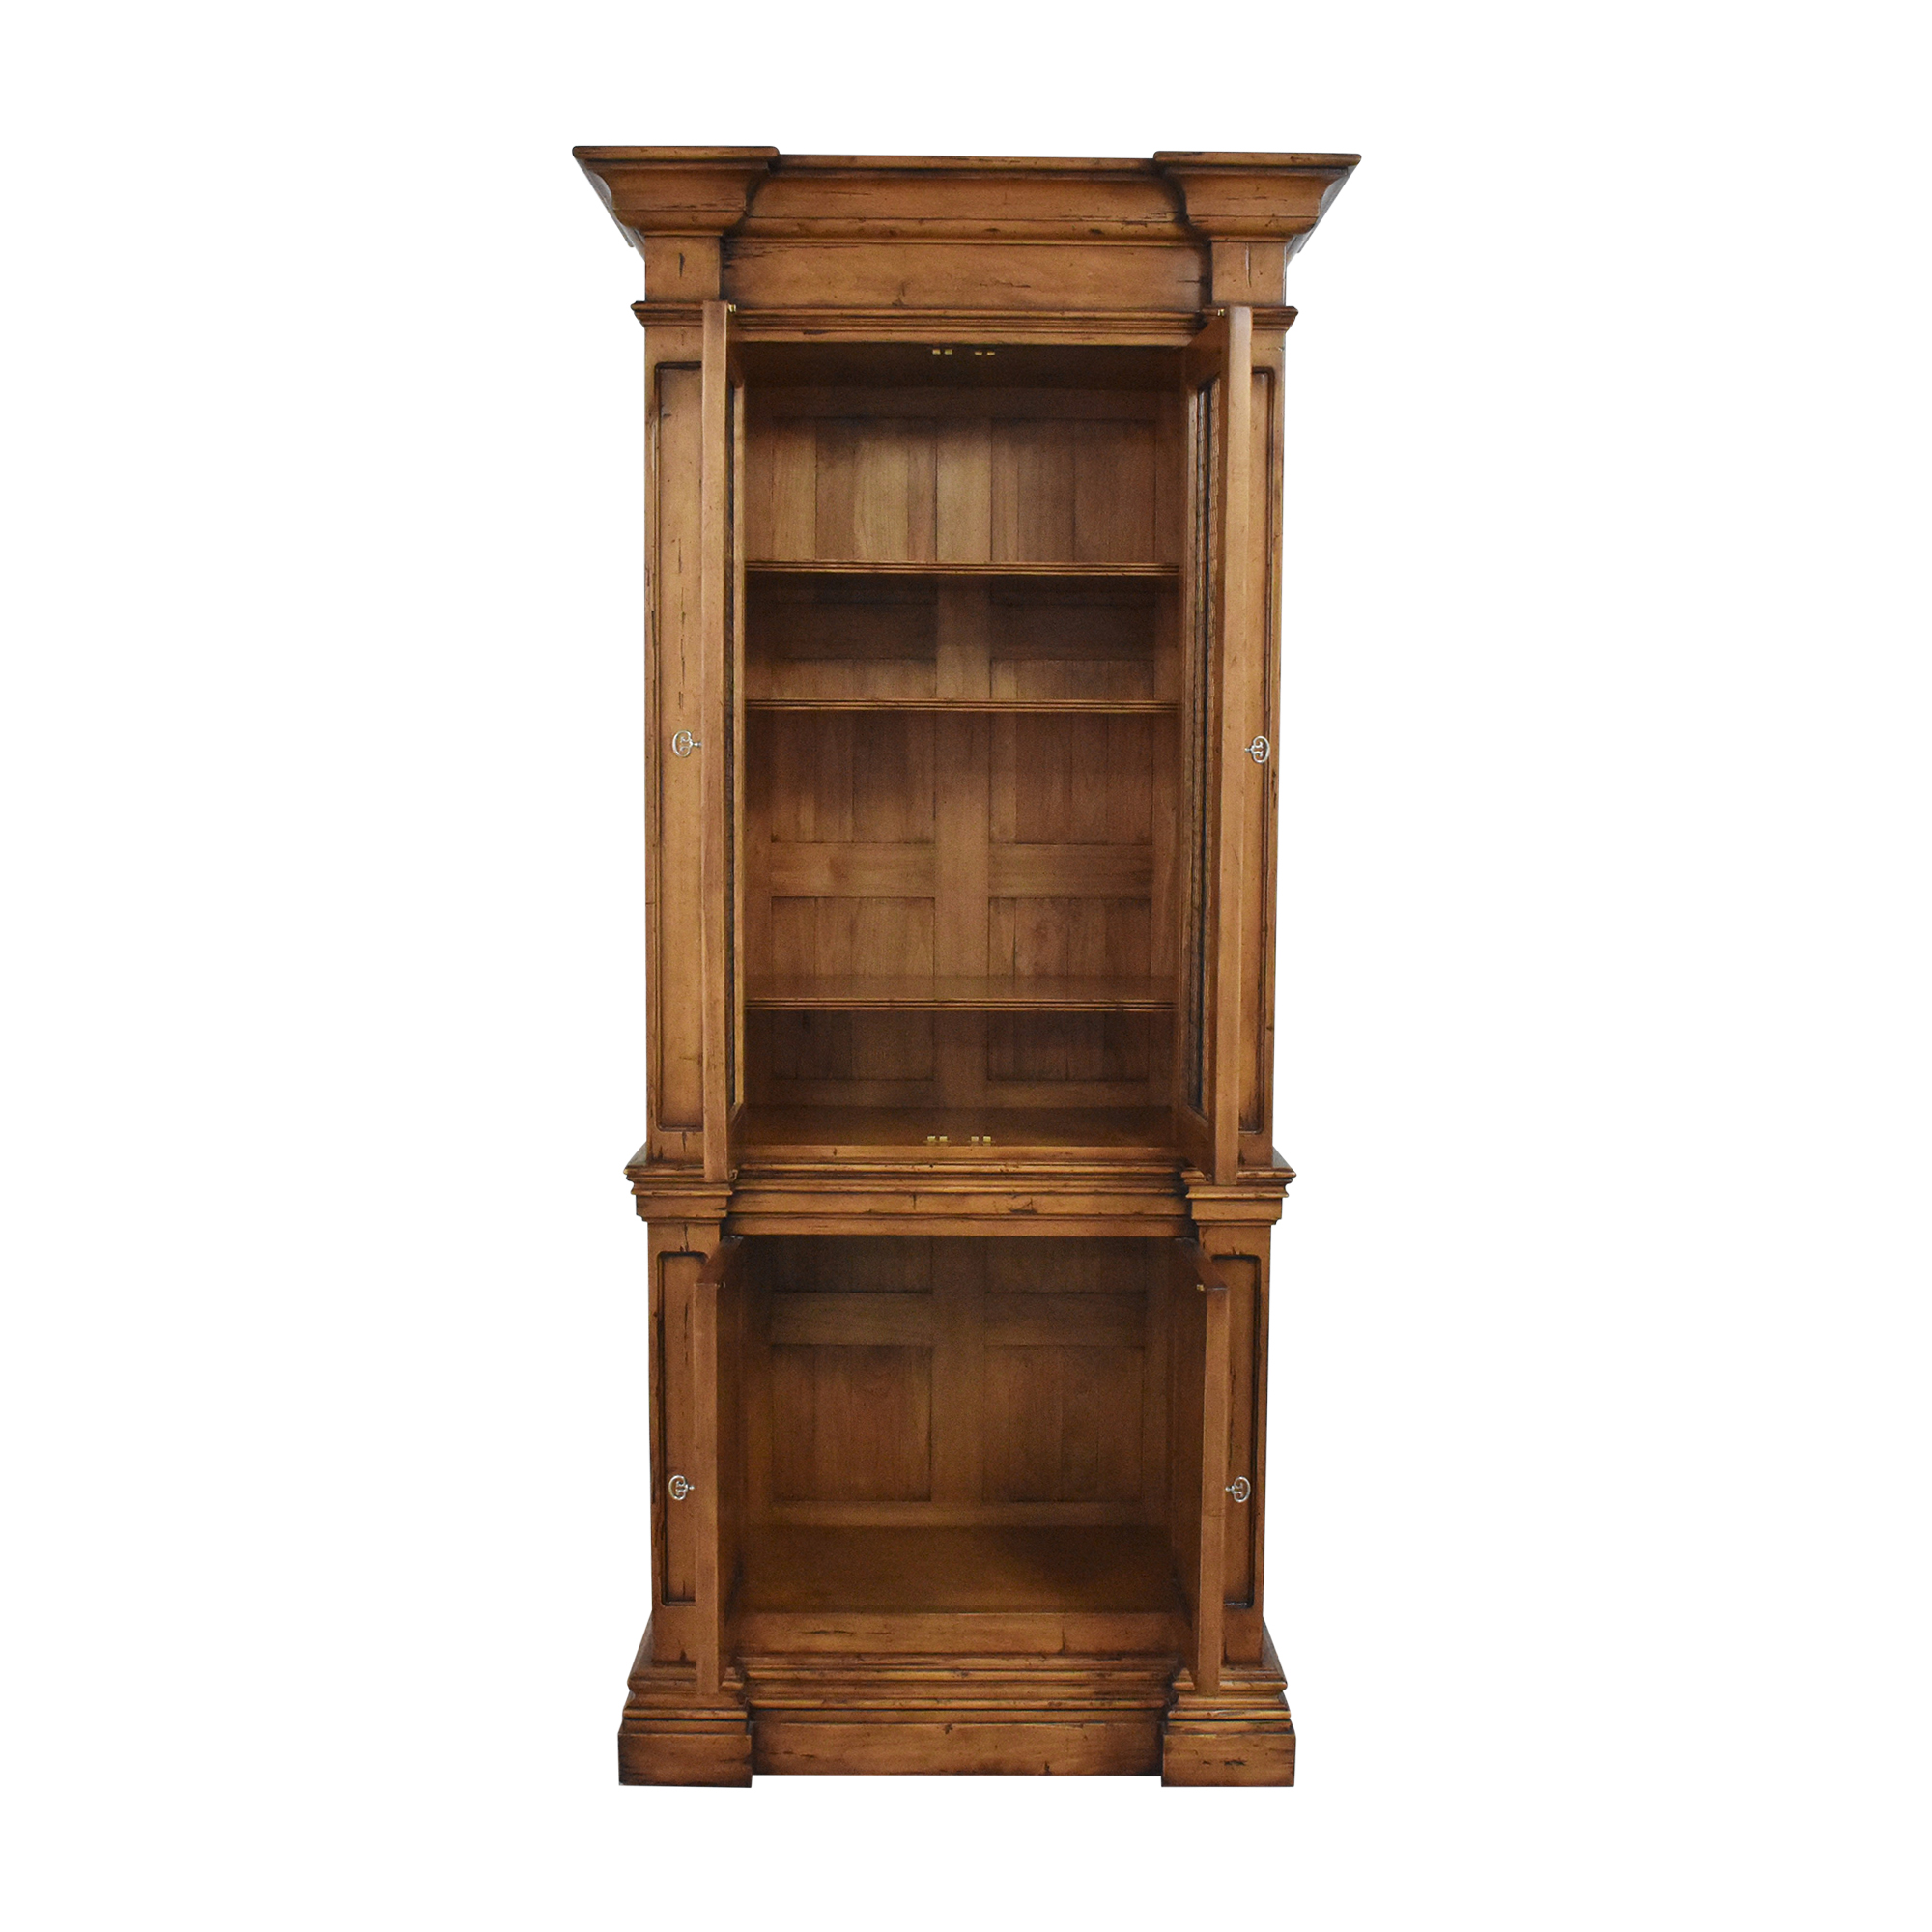 shop Guy Chaddock & Co. Hutch Cabinet Guy Chaddock & Co. Bookcases & Shelving